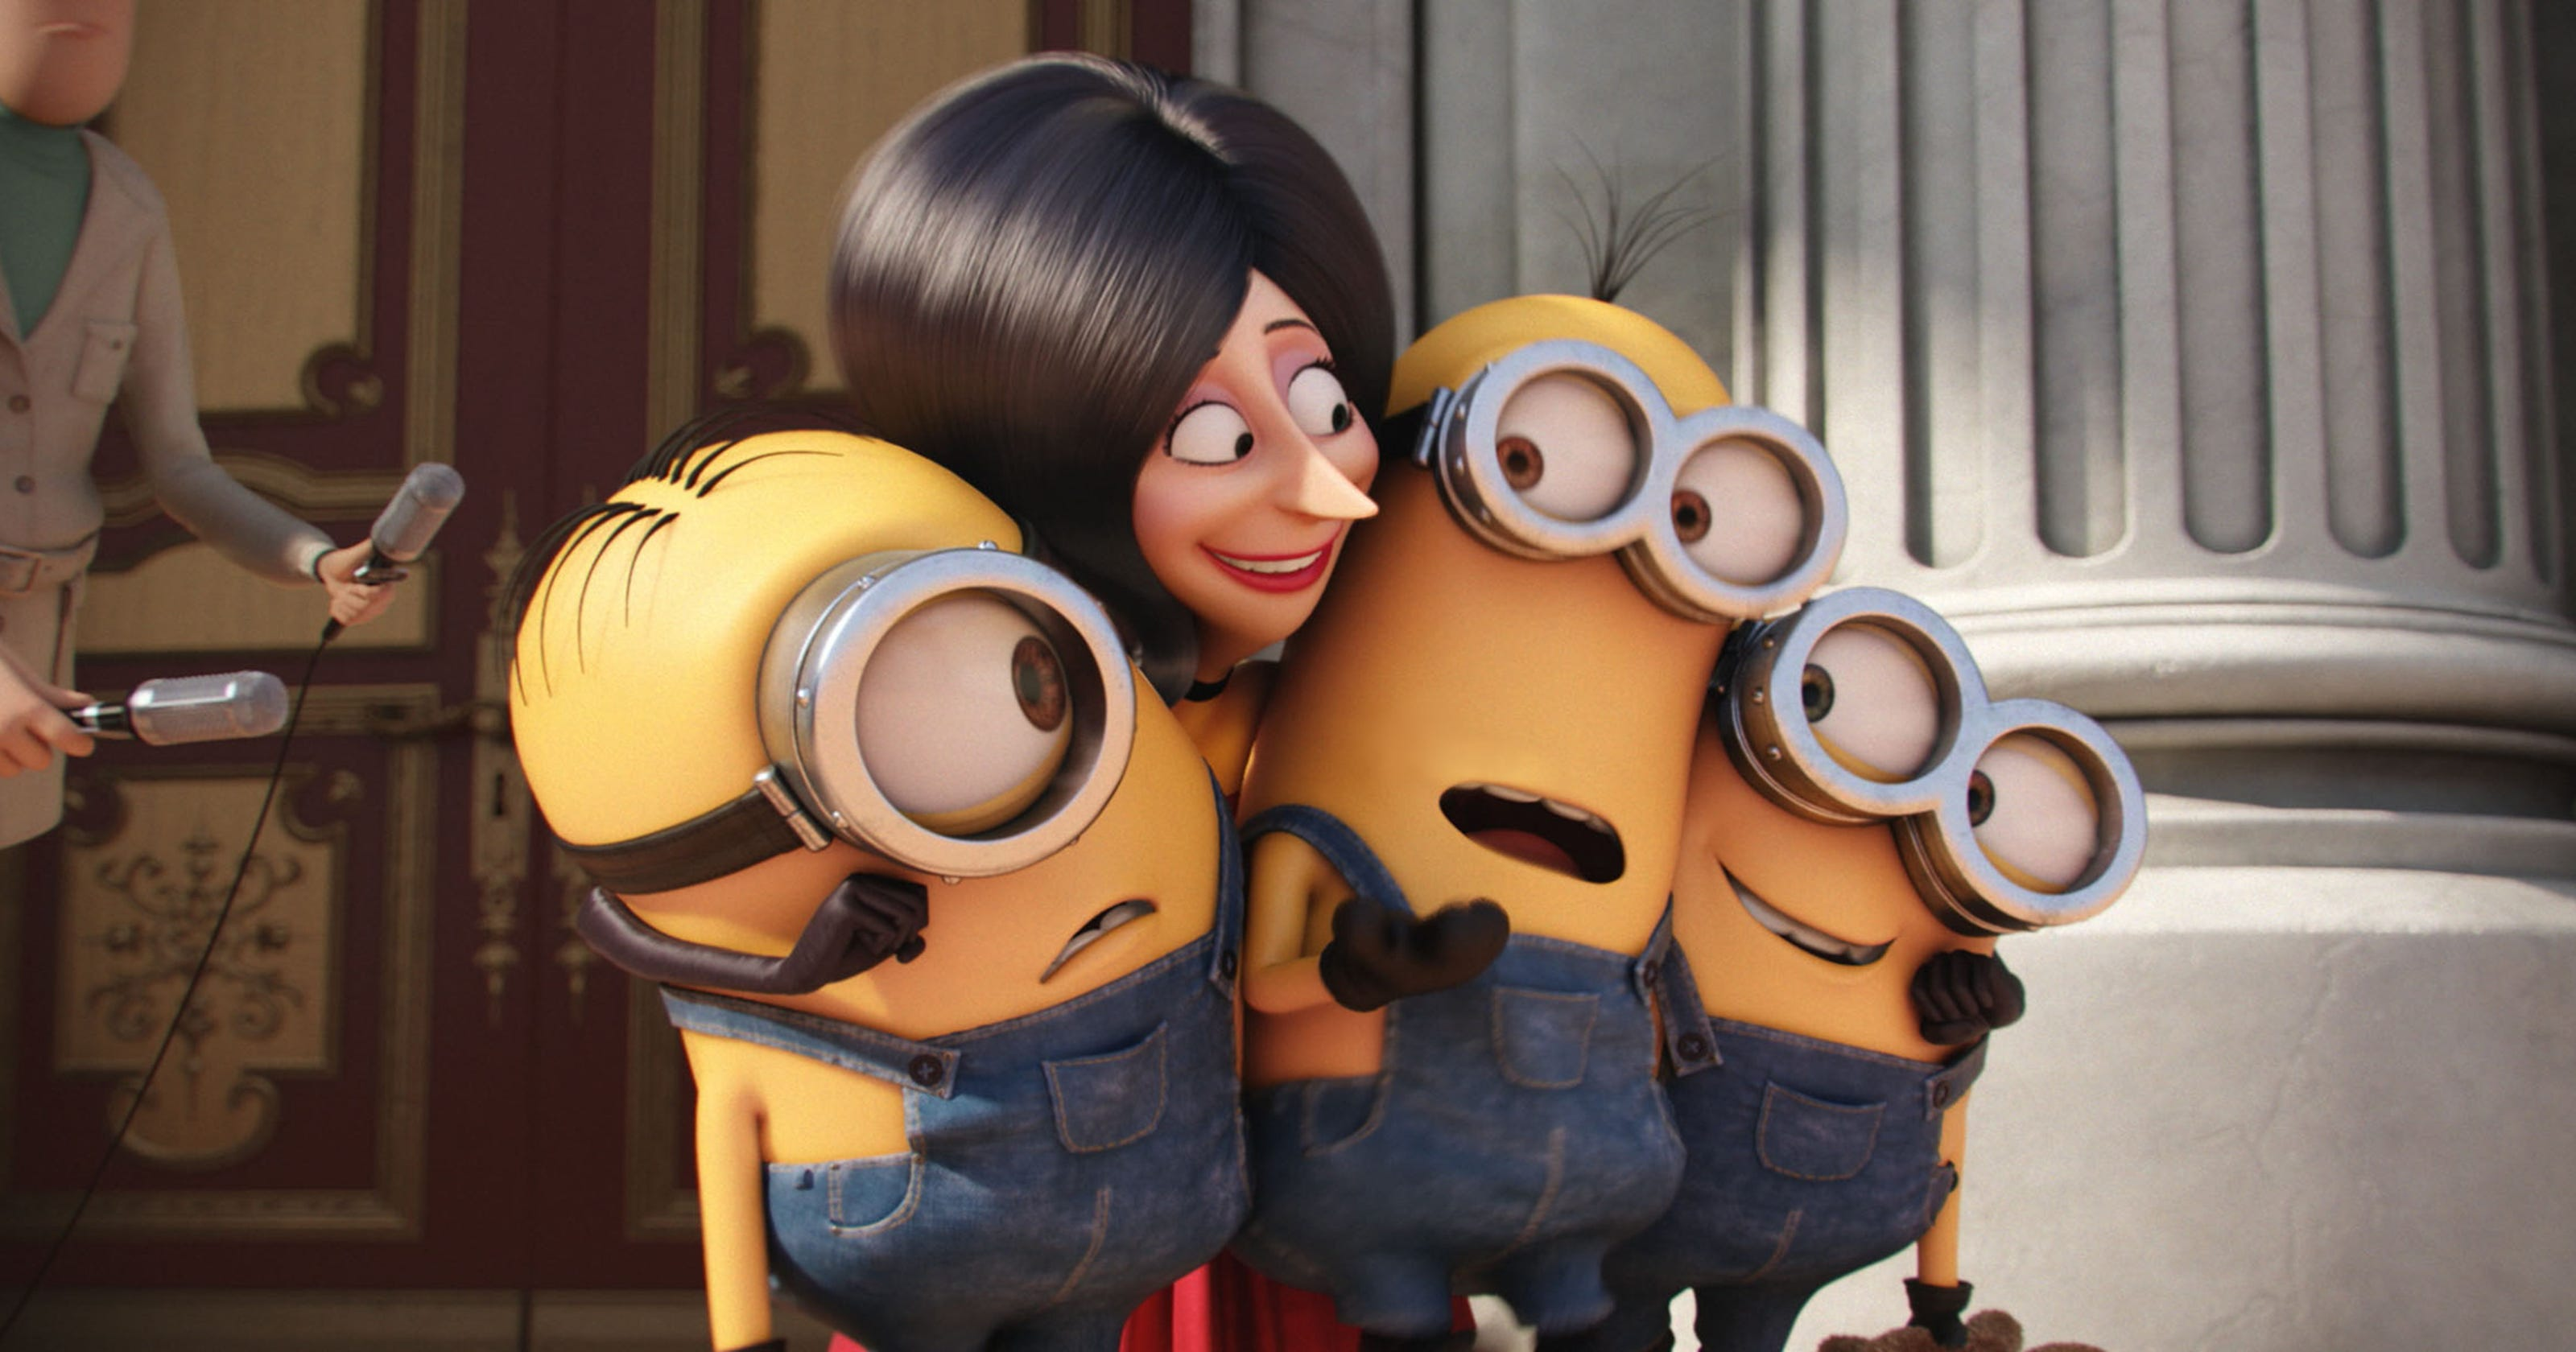 Review Minions Mania Still Has Charm